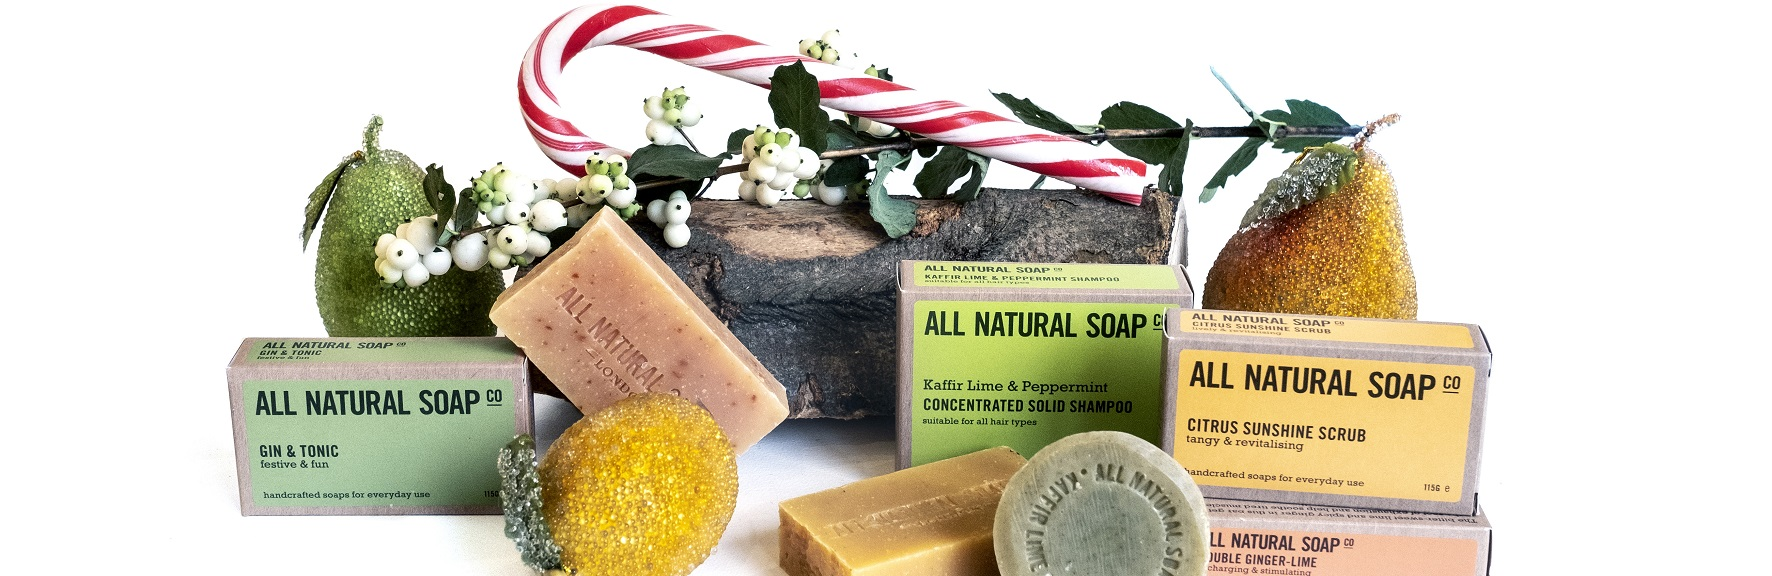 Christmas-2018_ALL-NATURAL-SOAP-Co